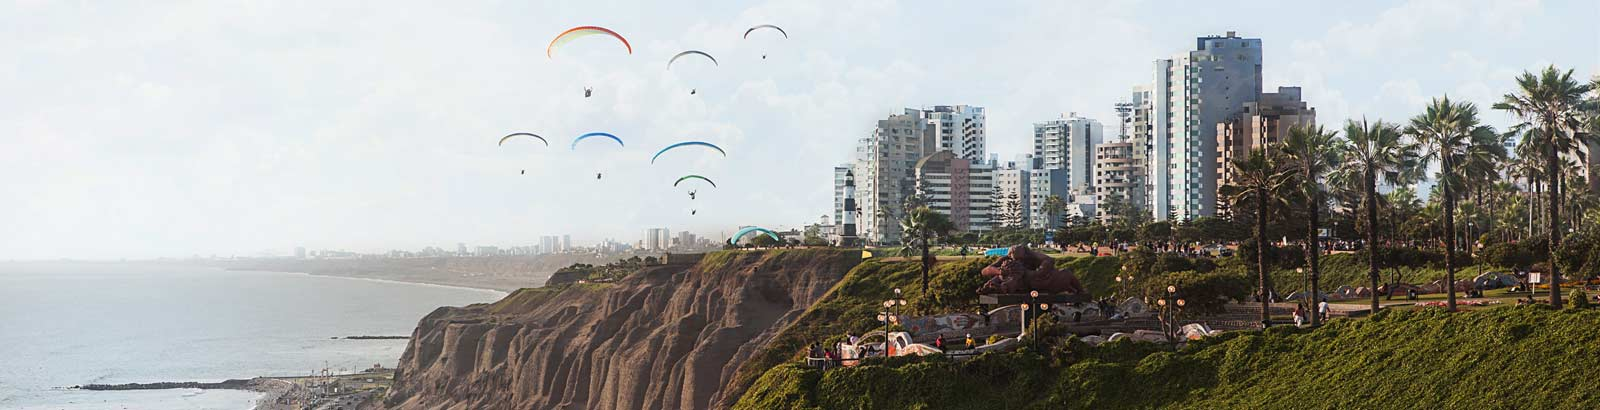 Paragliders in flight along the cliff coastline of Miraflores